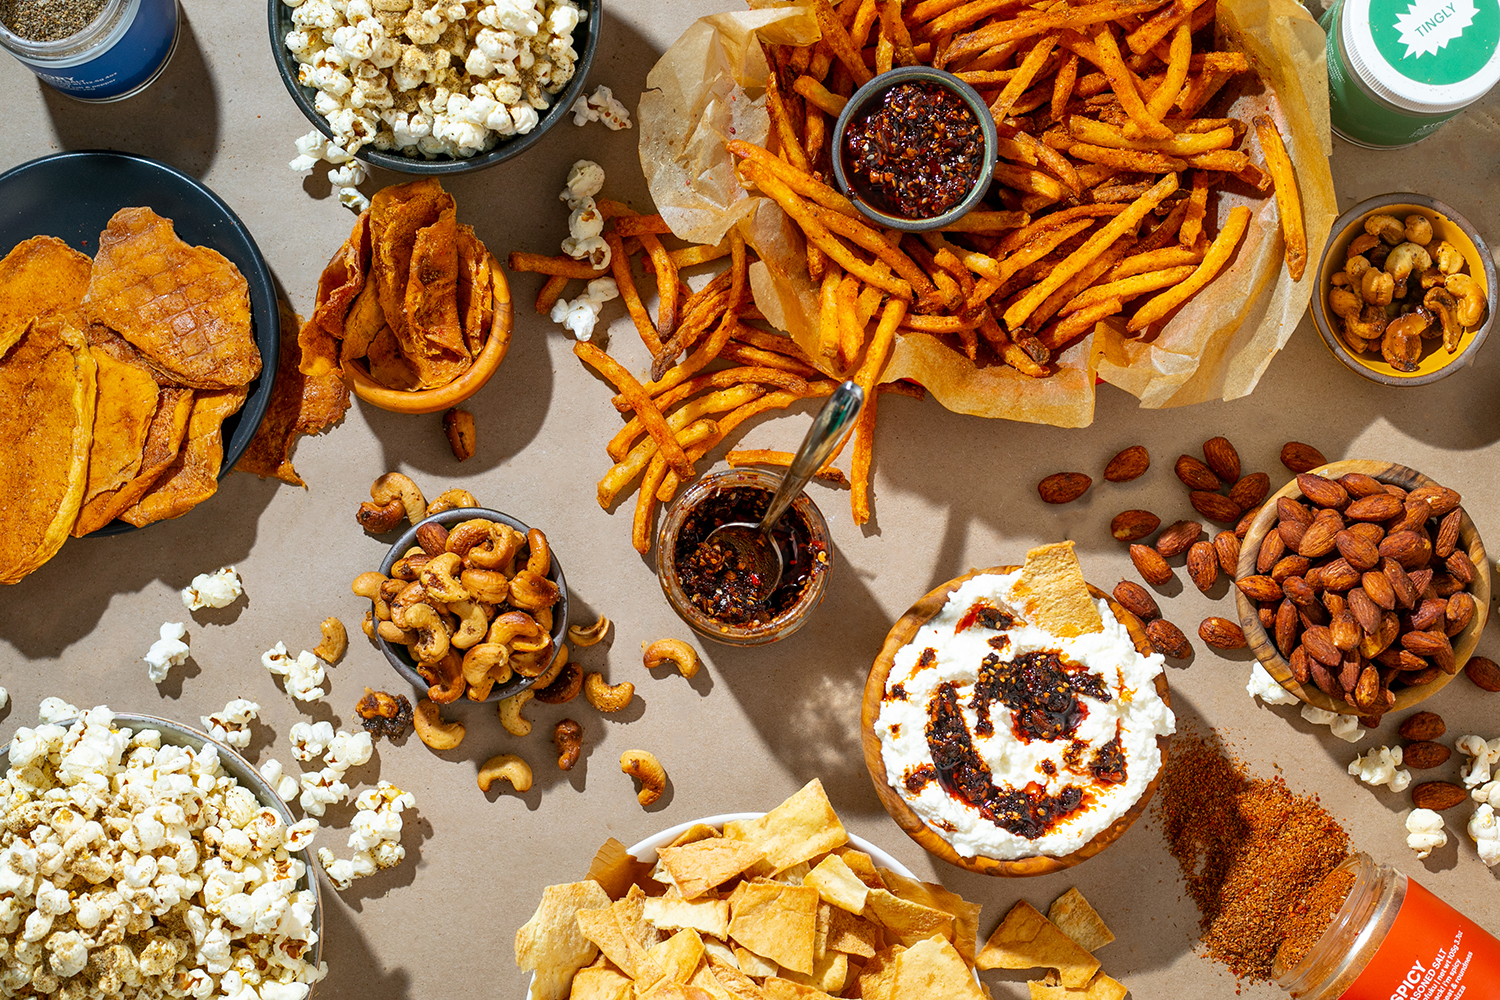 table of snack foods